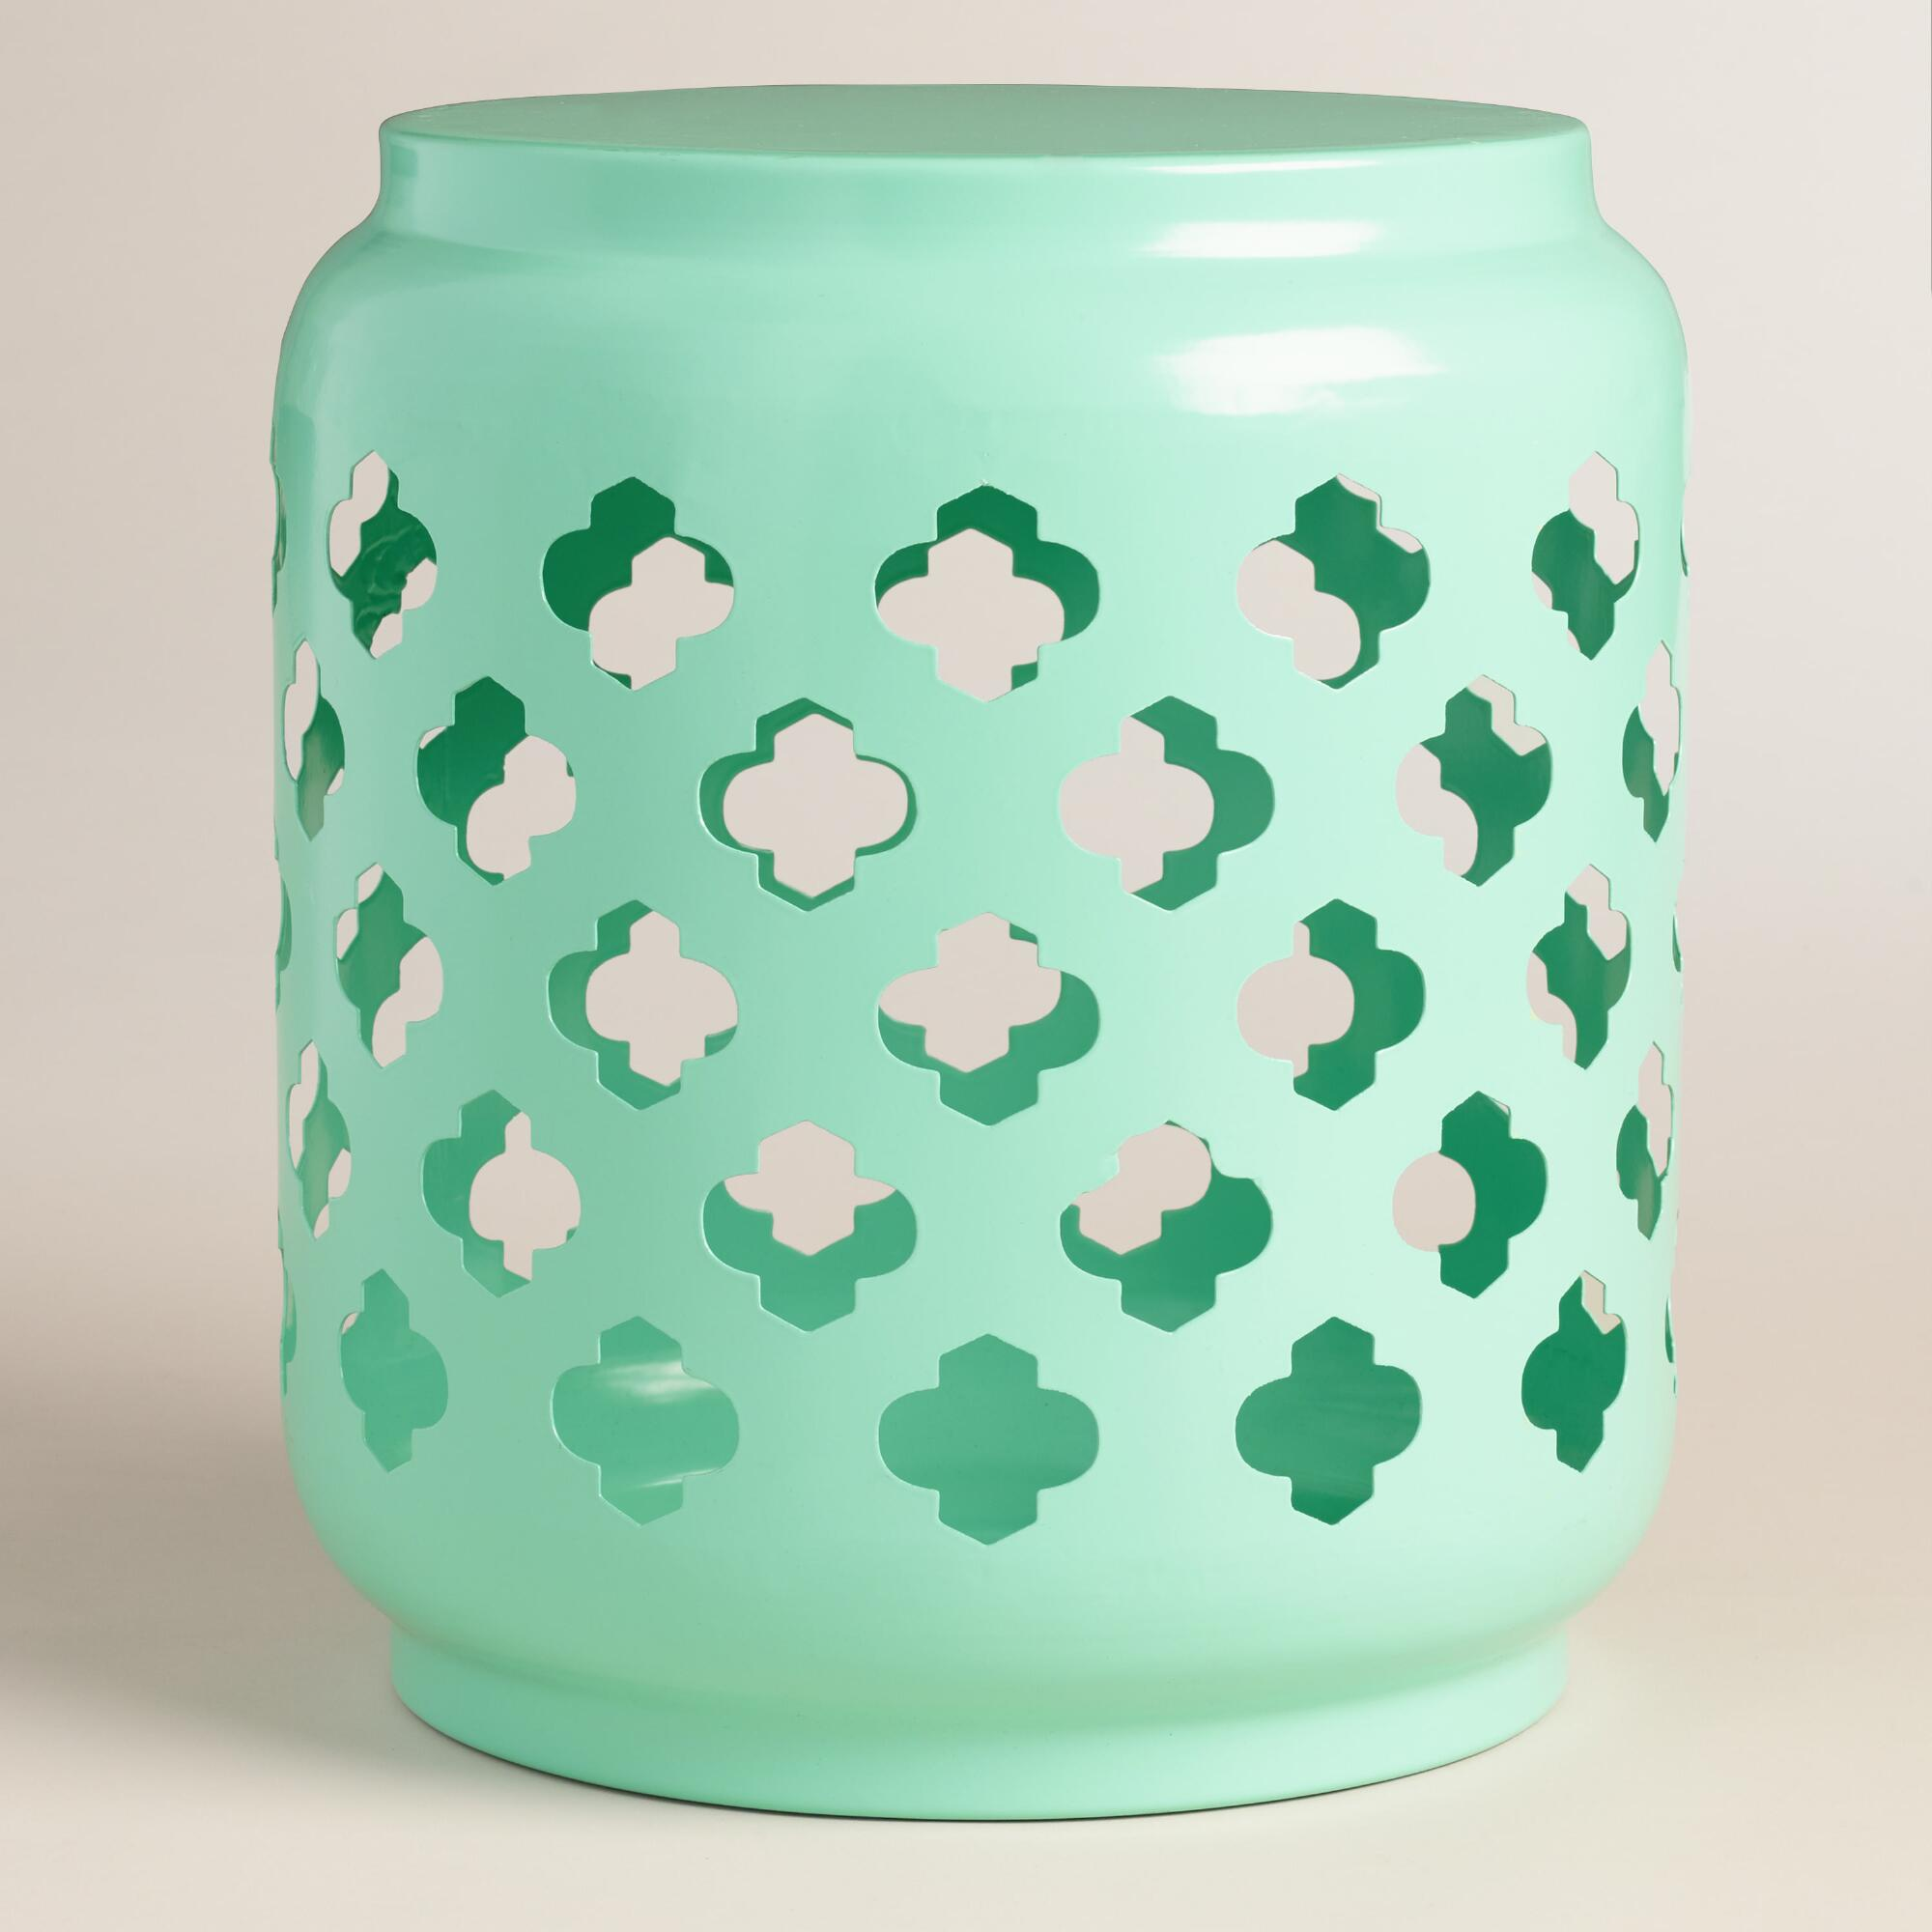 Great garden stool for decorating interior ideas with ceramic garden stool